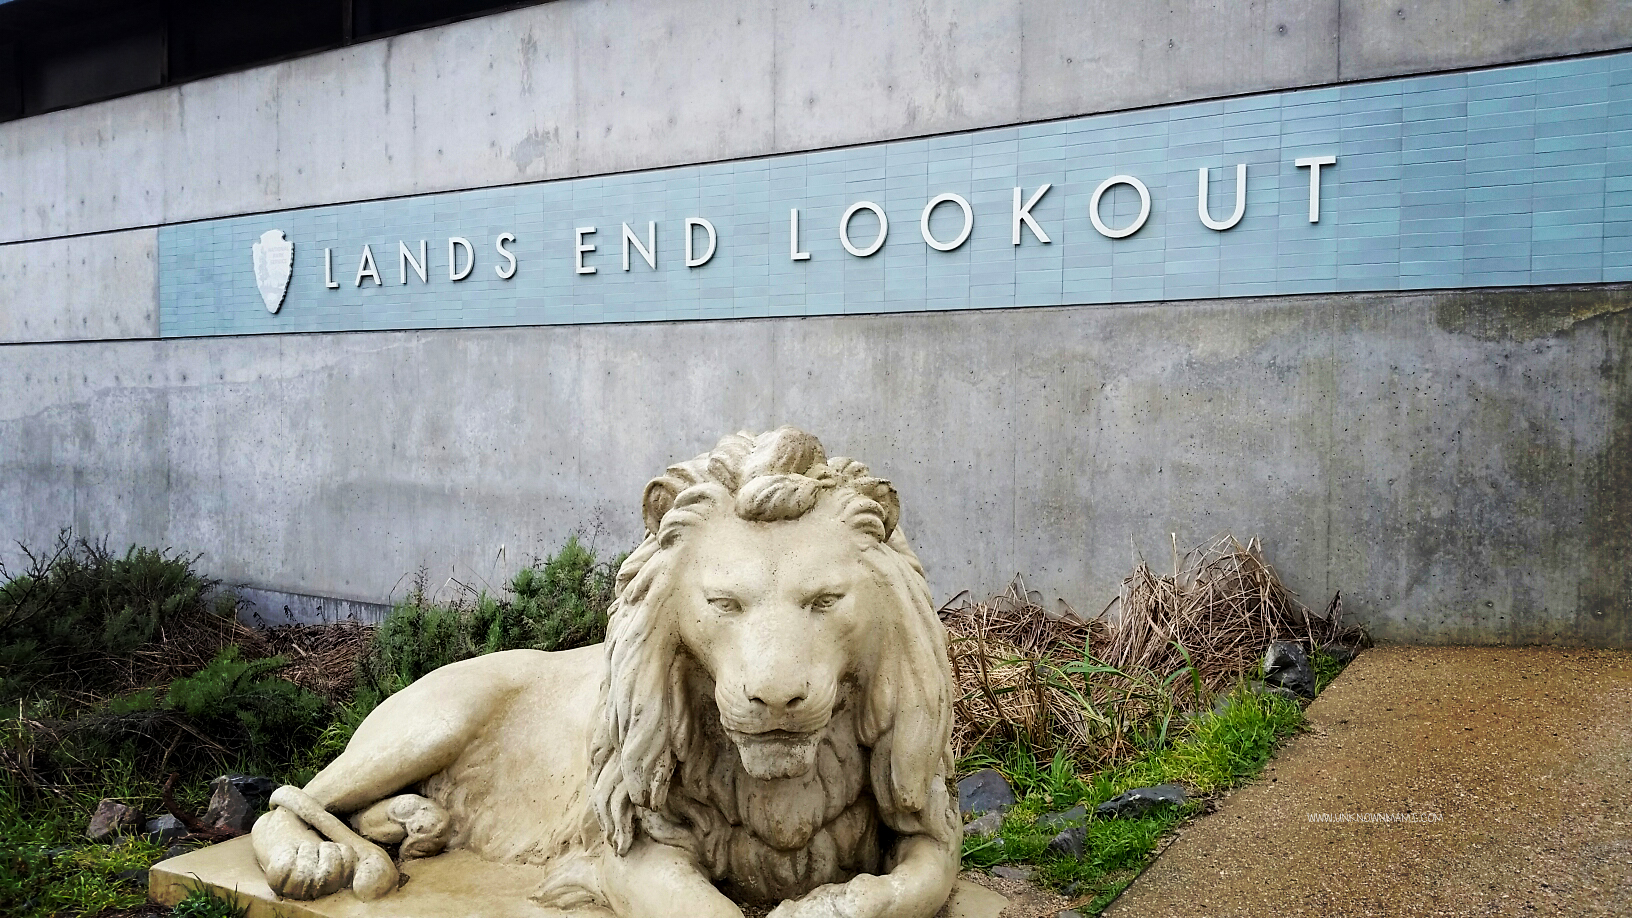 Lands End Lookout Sign